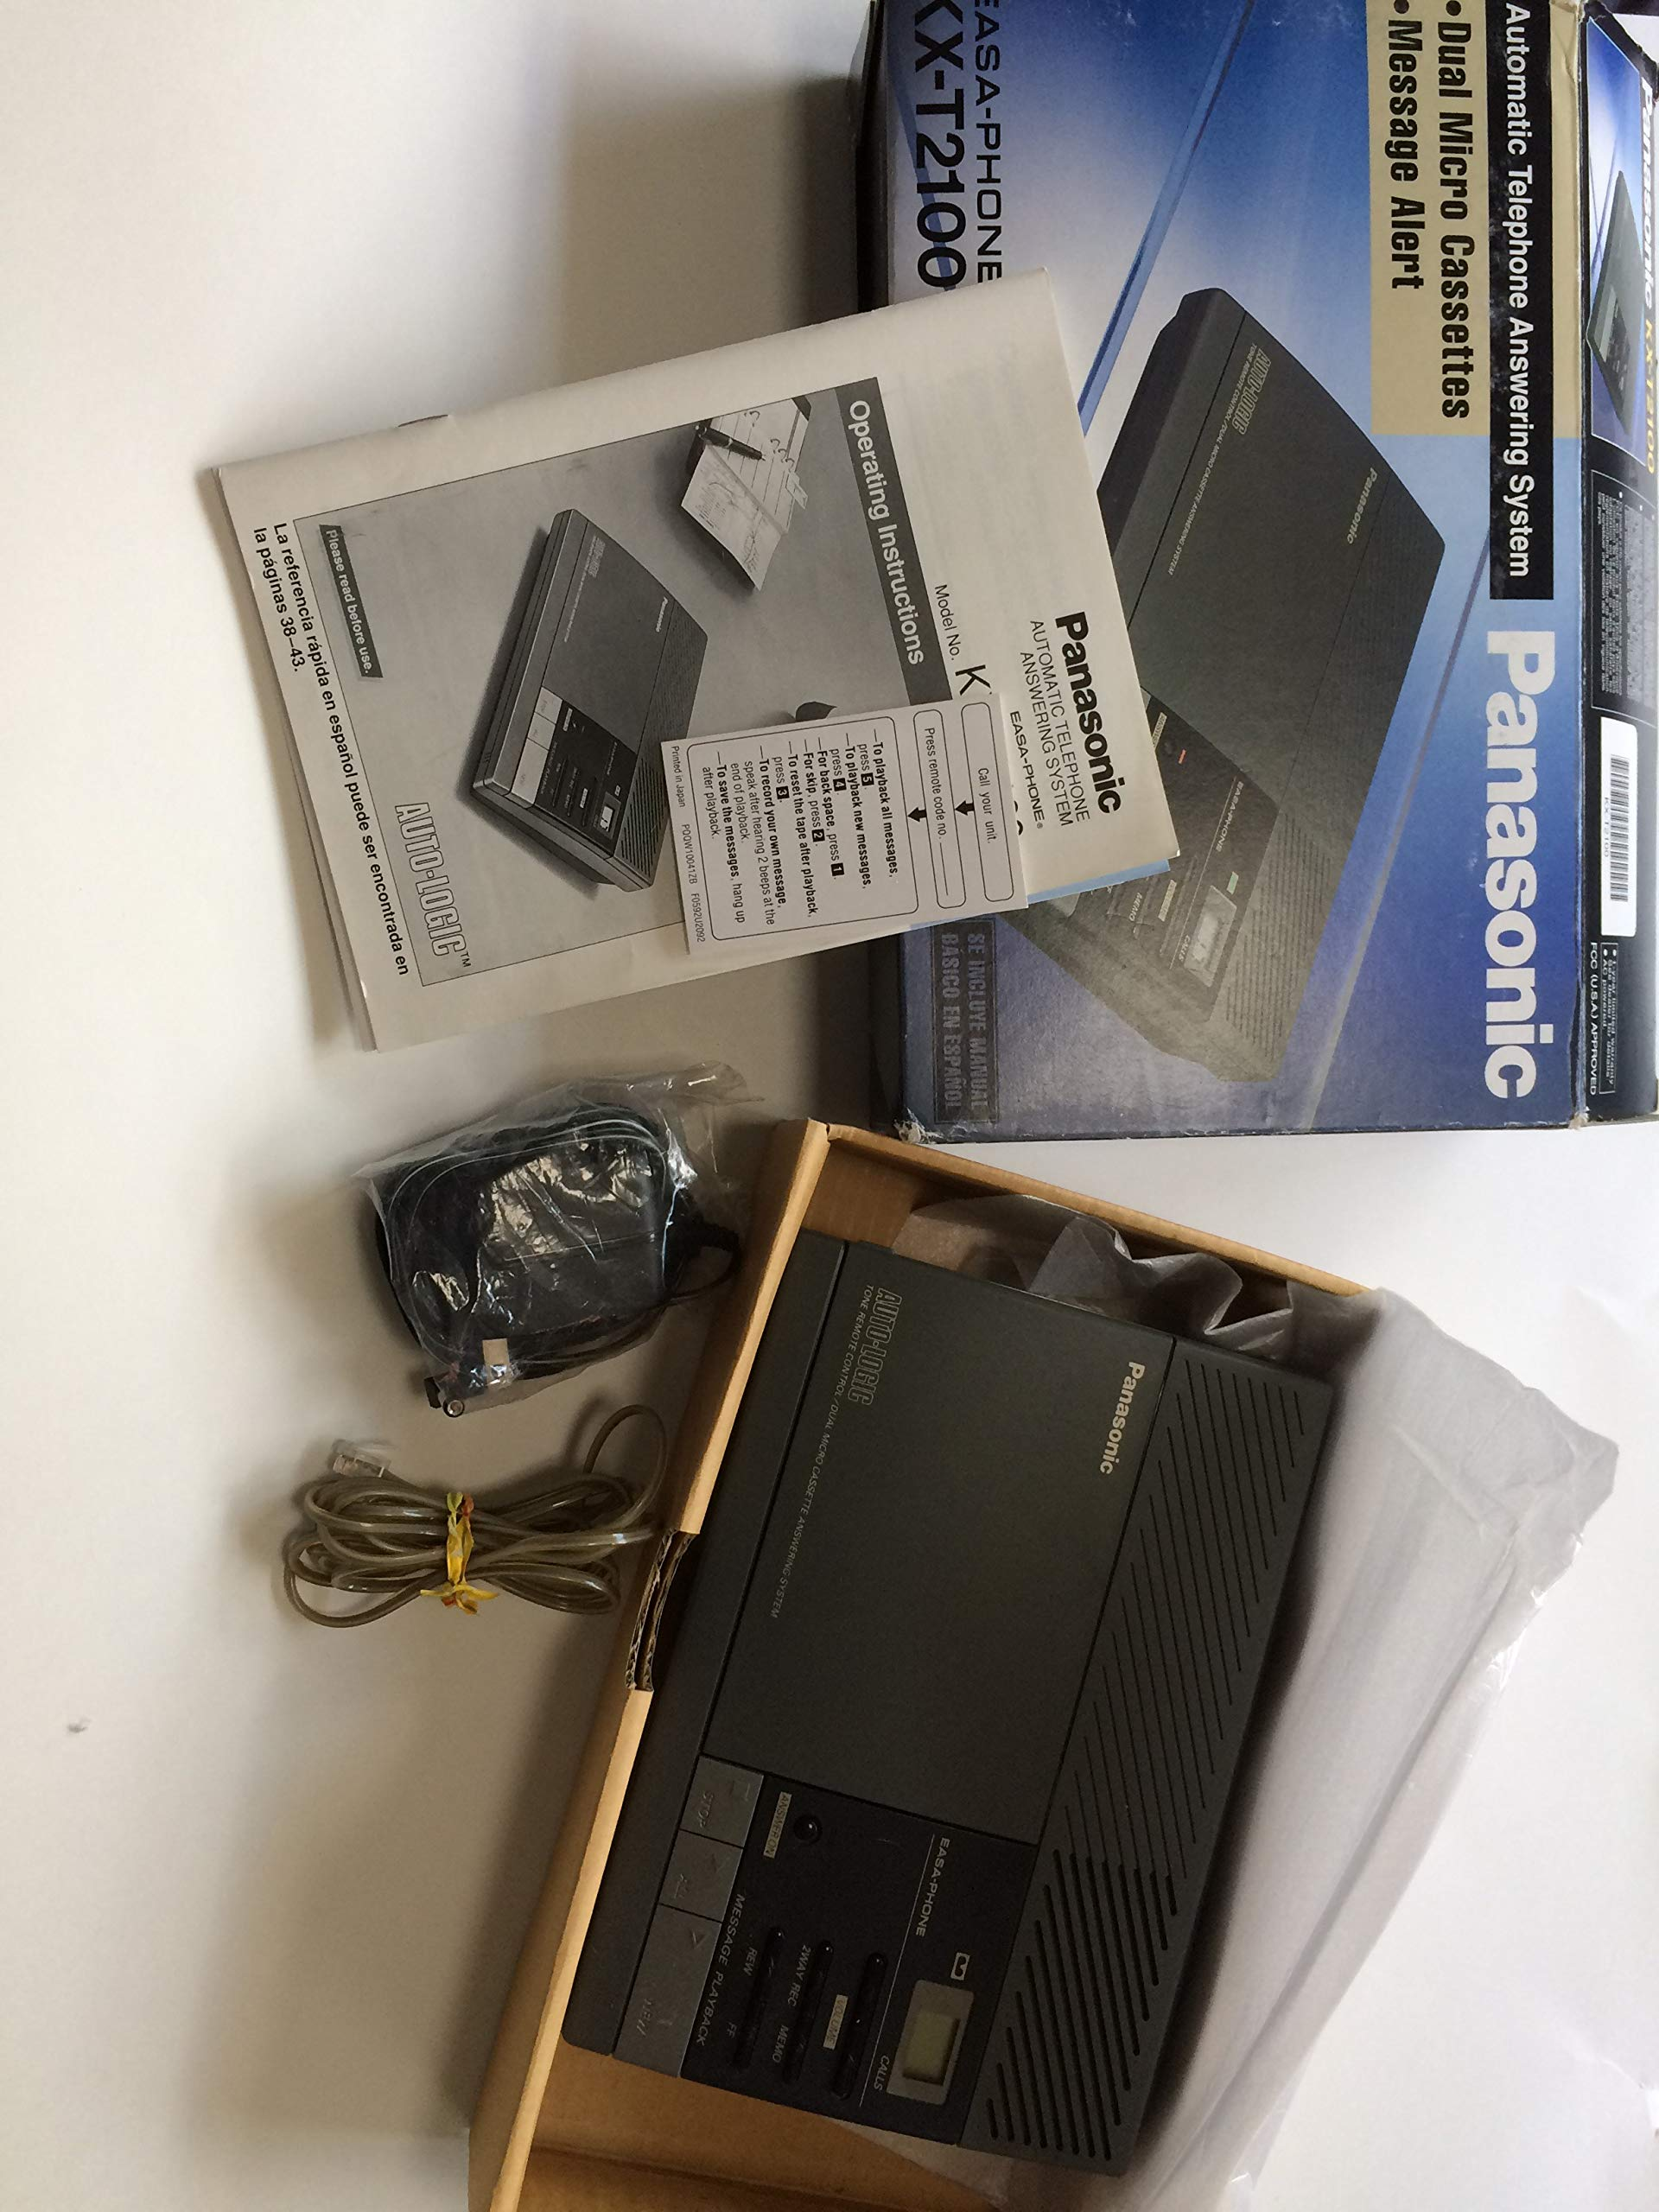 Panasonic Easa-phone KX-T2100 Automatic Telephone Answering System by Easa-Phone